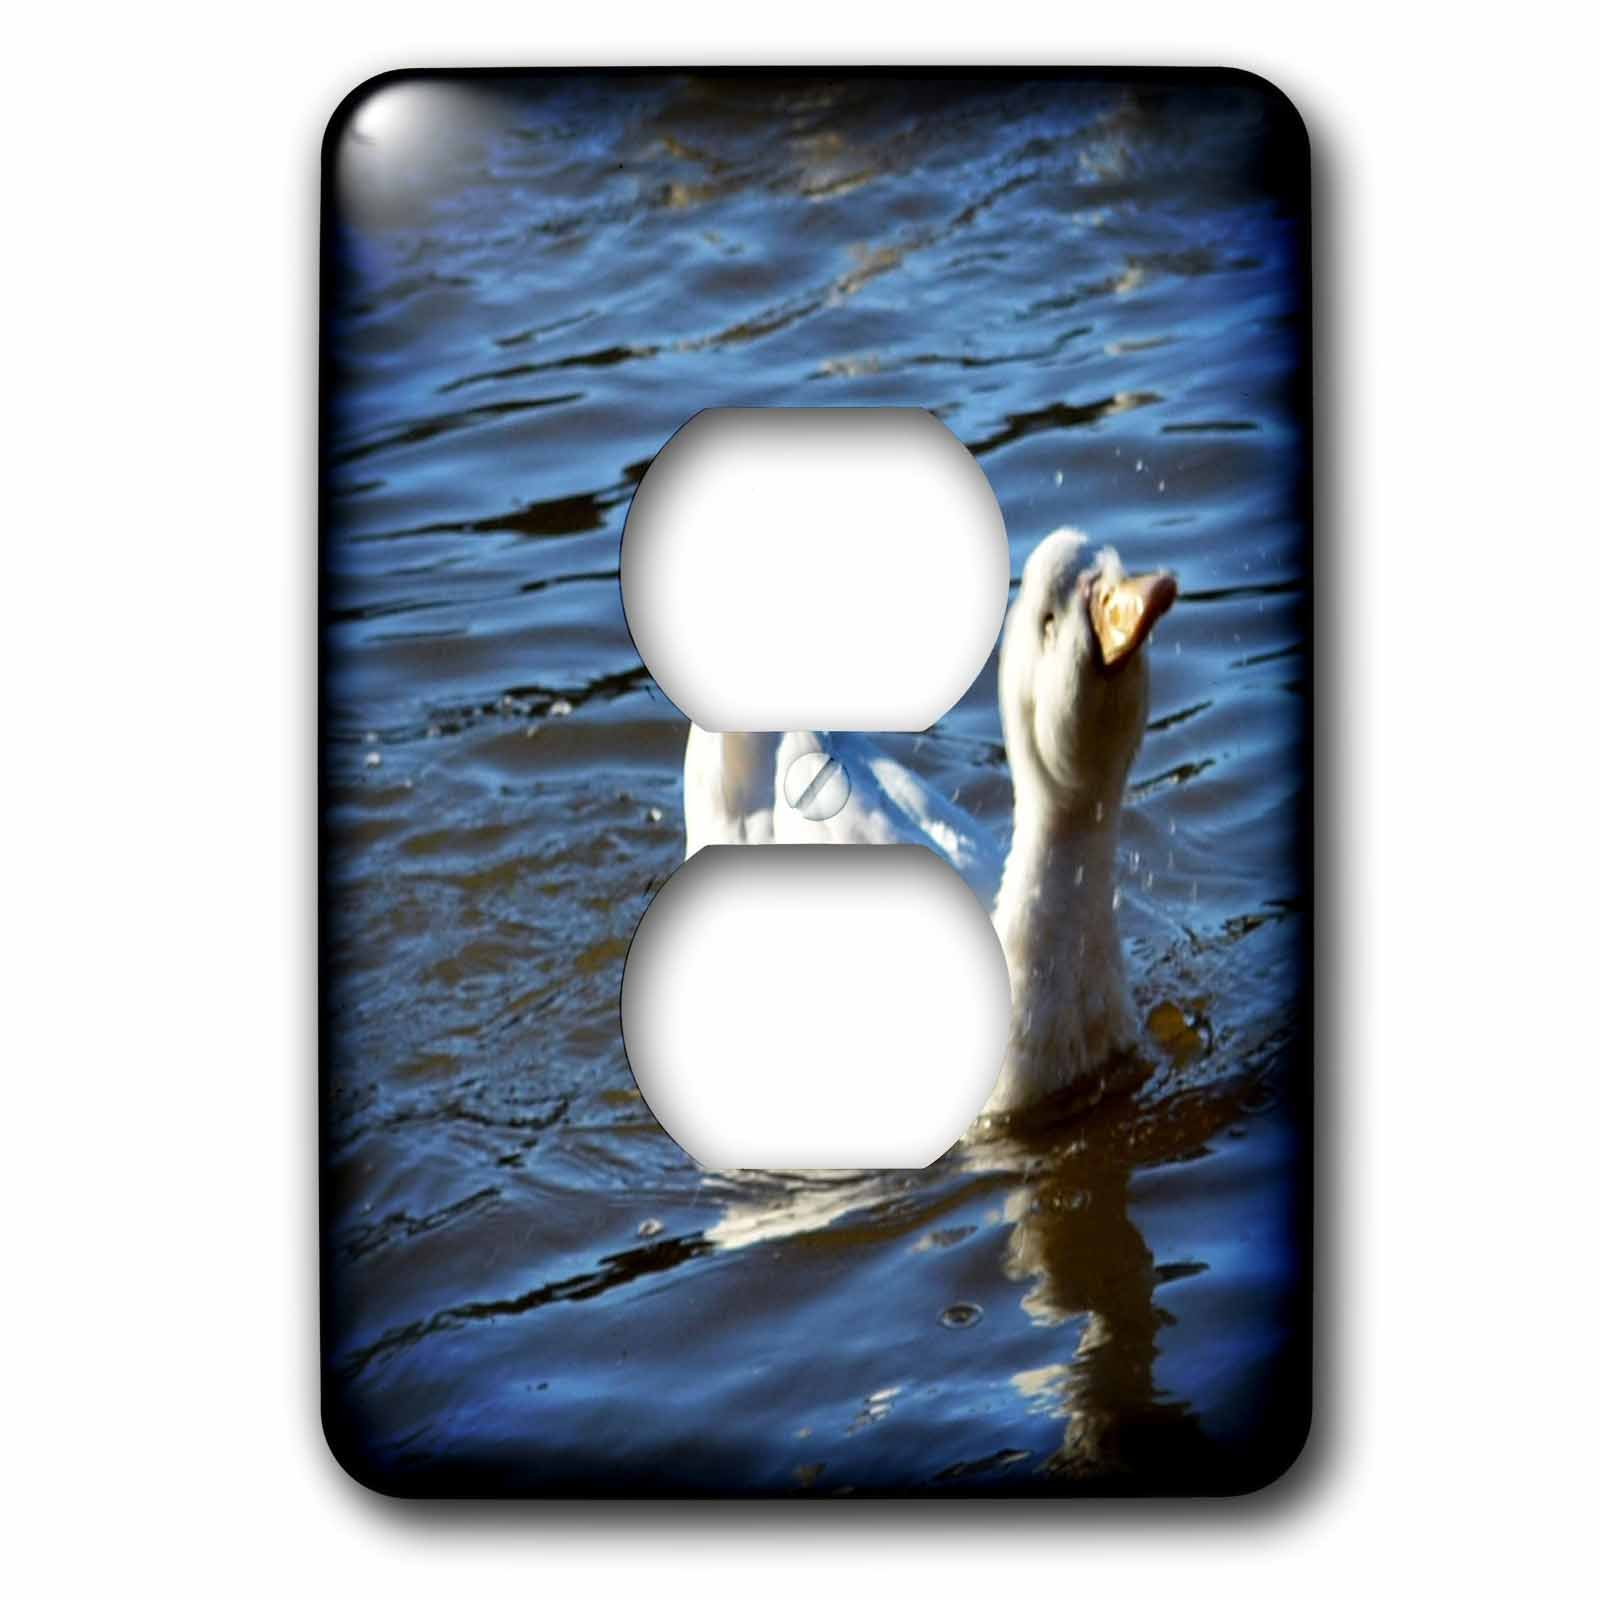 3dRose WhiteOaks Photography and Artwork - Ducks - Puffy Face Duck is a photo of a duck making a puffy looking face - Light Switch Covers - 2 plug outlet cover (lsp_265326_6)